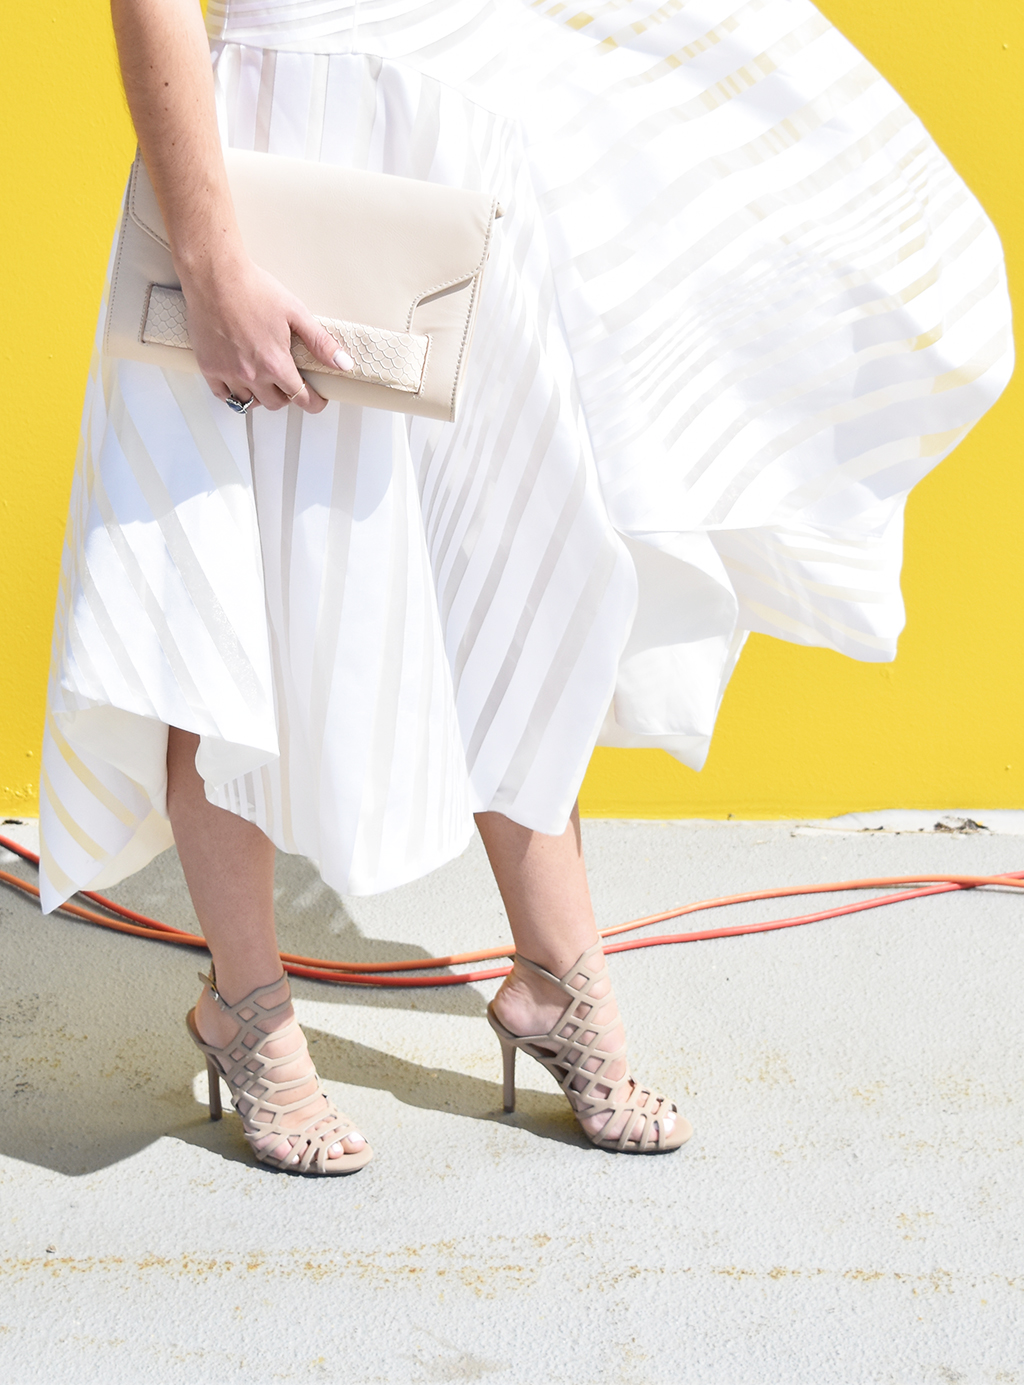 Keeping it monochrome. White Dress + Blush Bag + Nude Heels = Simple Elegance | www.wovenwithgold.com